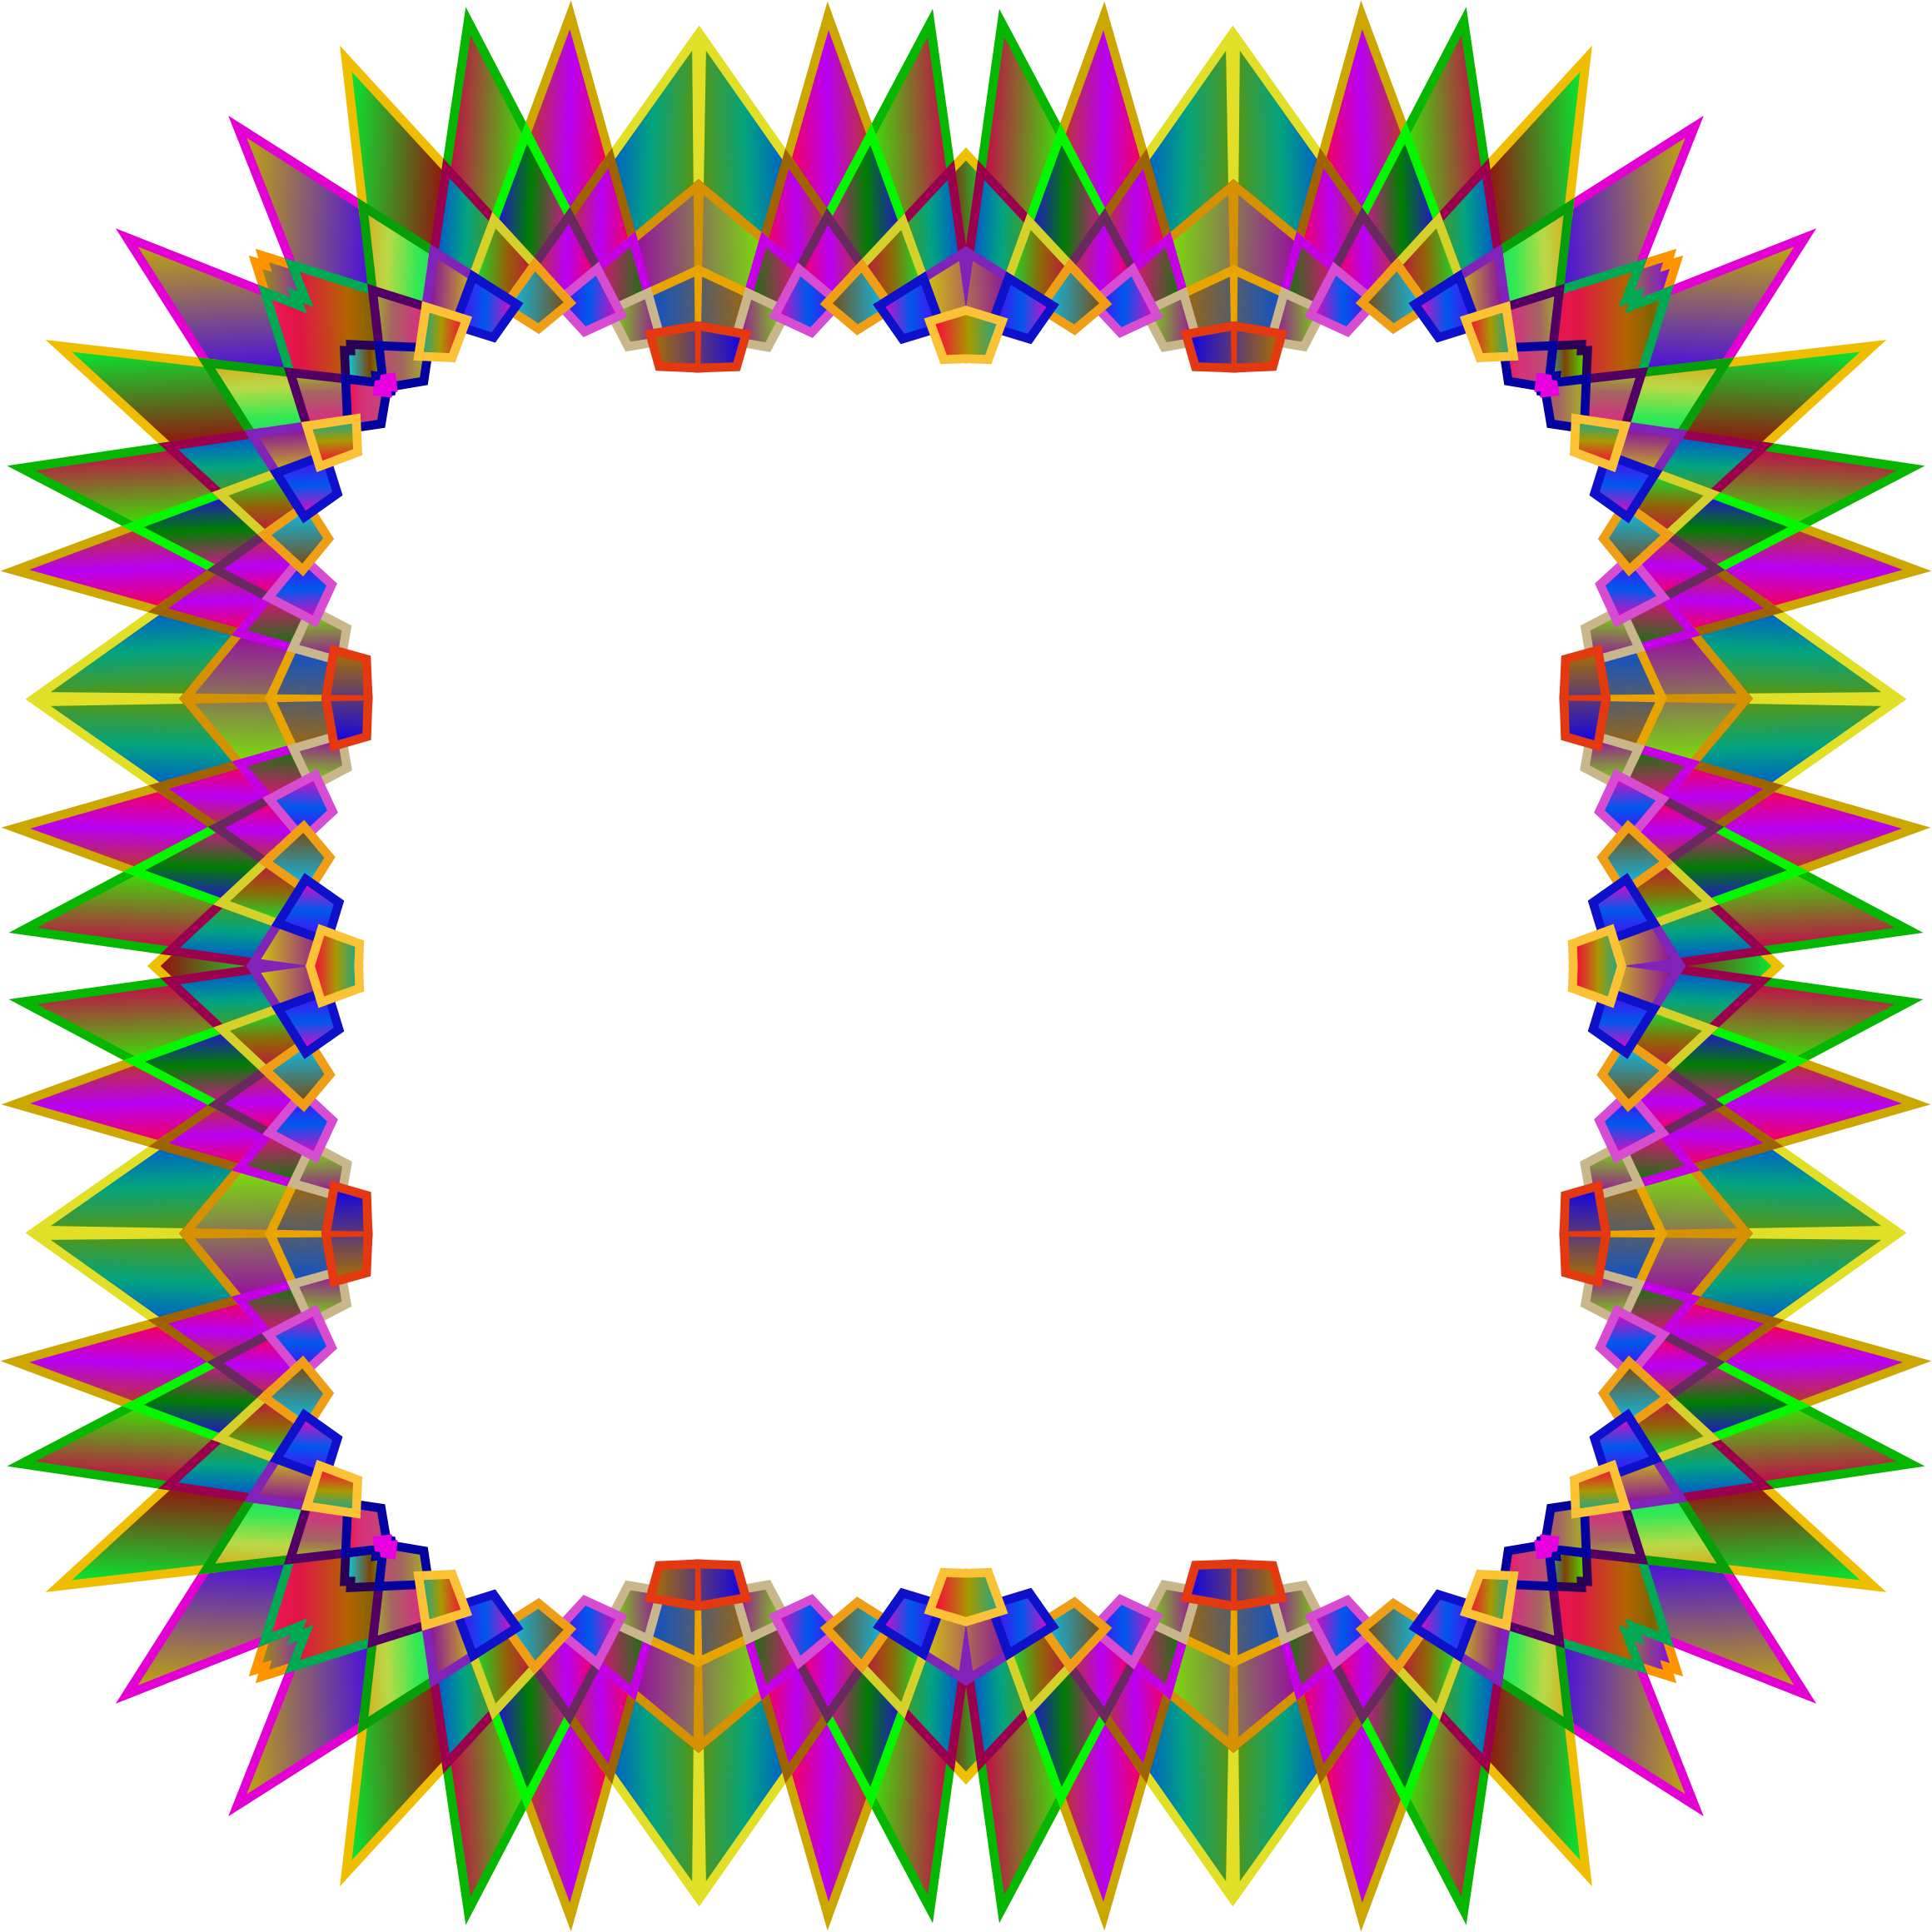 Star clipart picture frame. Prismatic multipoint icons png